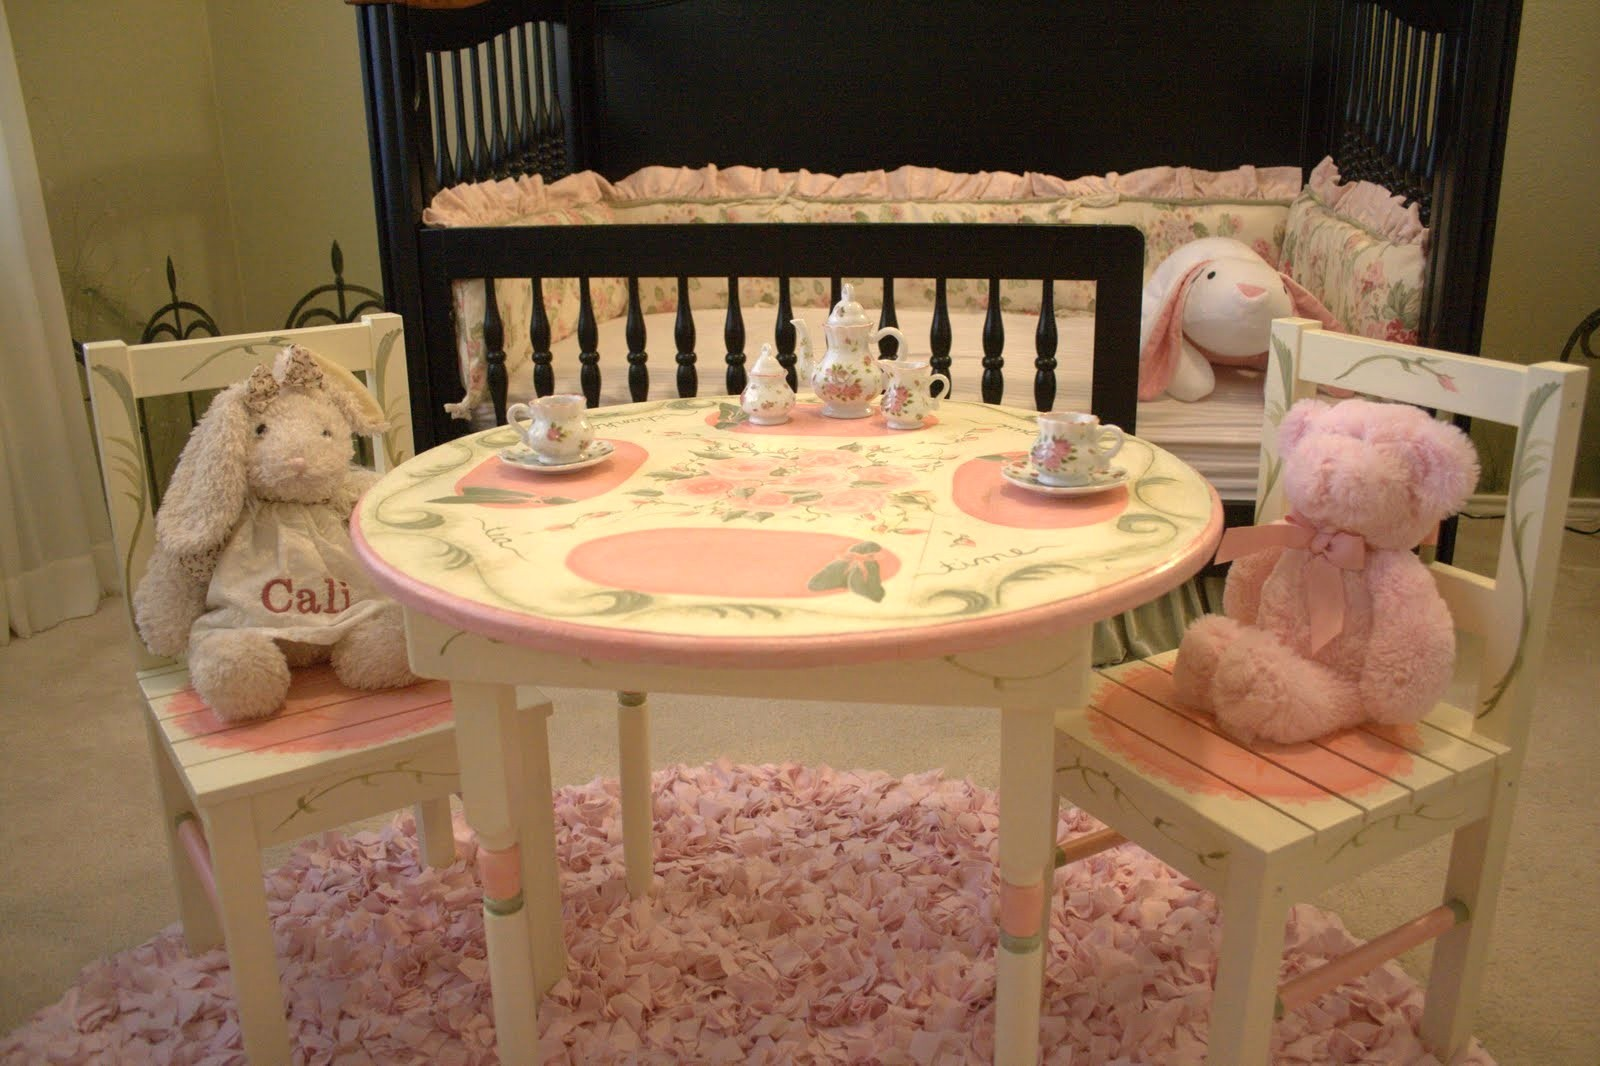 Kids tea party table - Gallery of kids tea party table